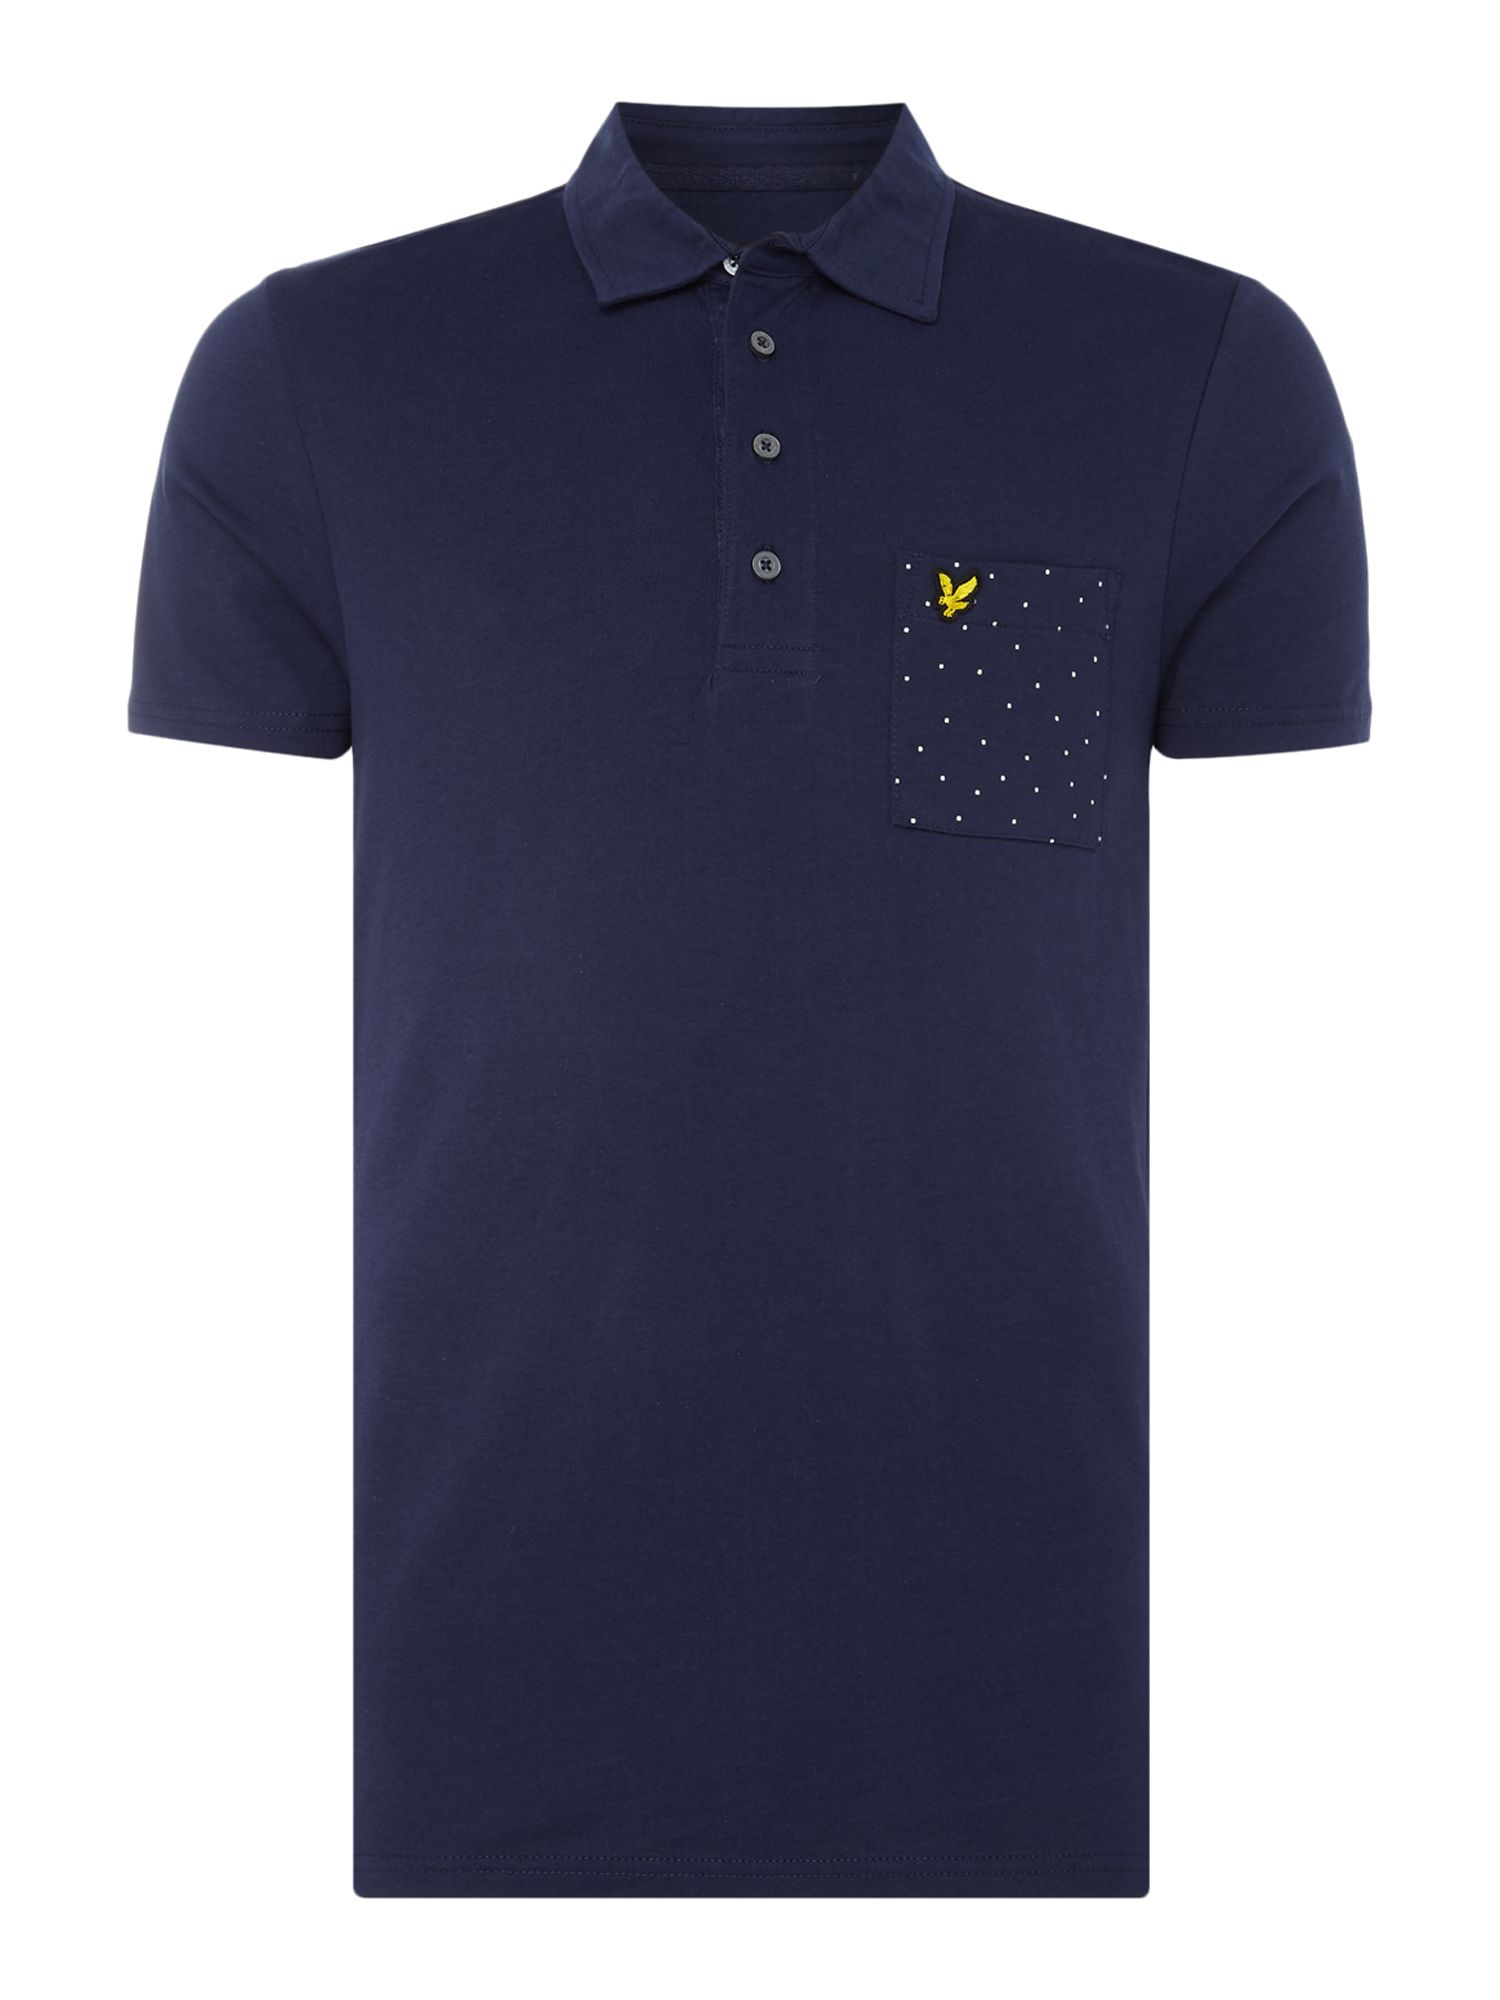 Men's Lyle and Scott Minimal dot pocket short sleeve polo, Blue